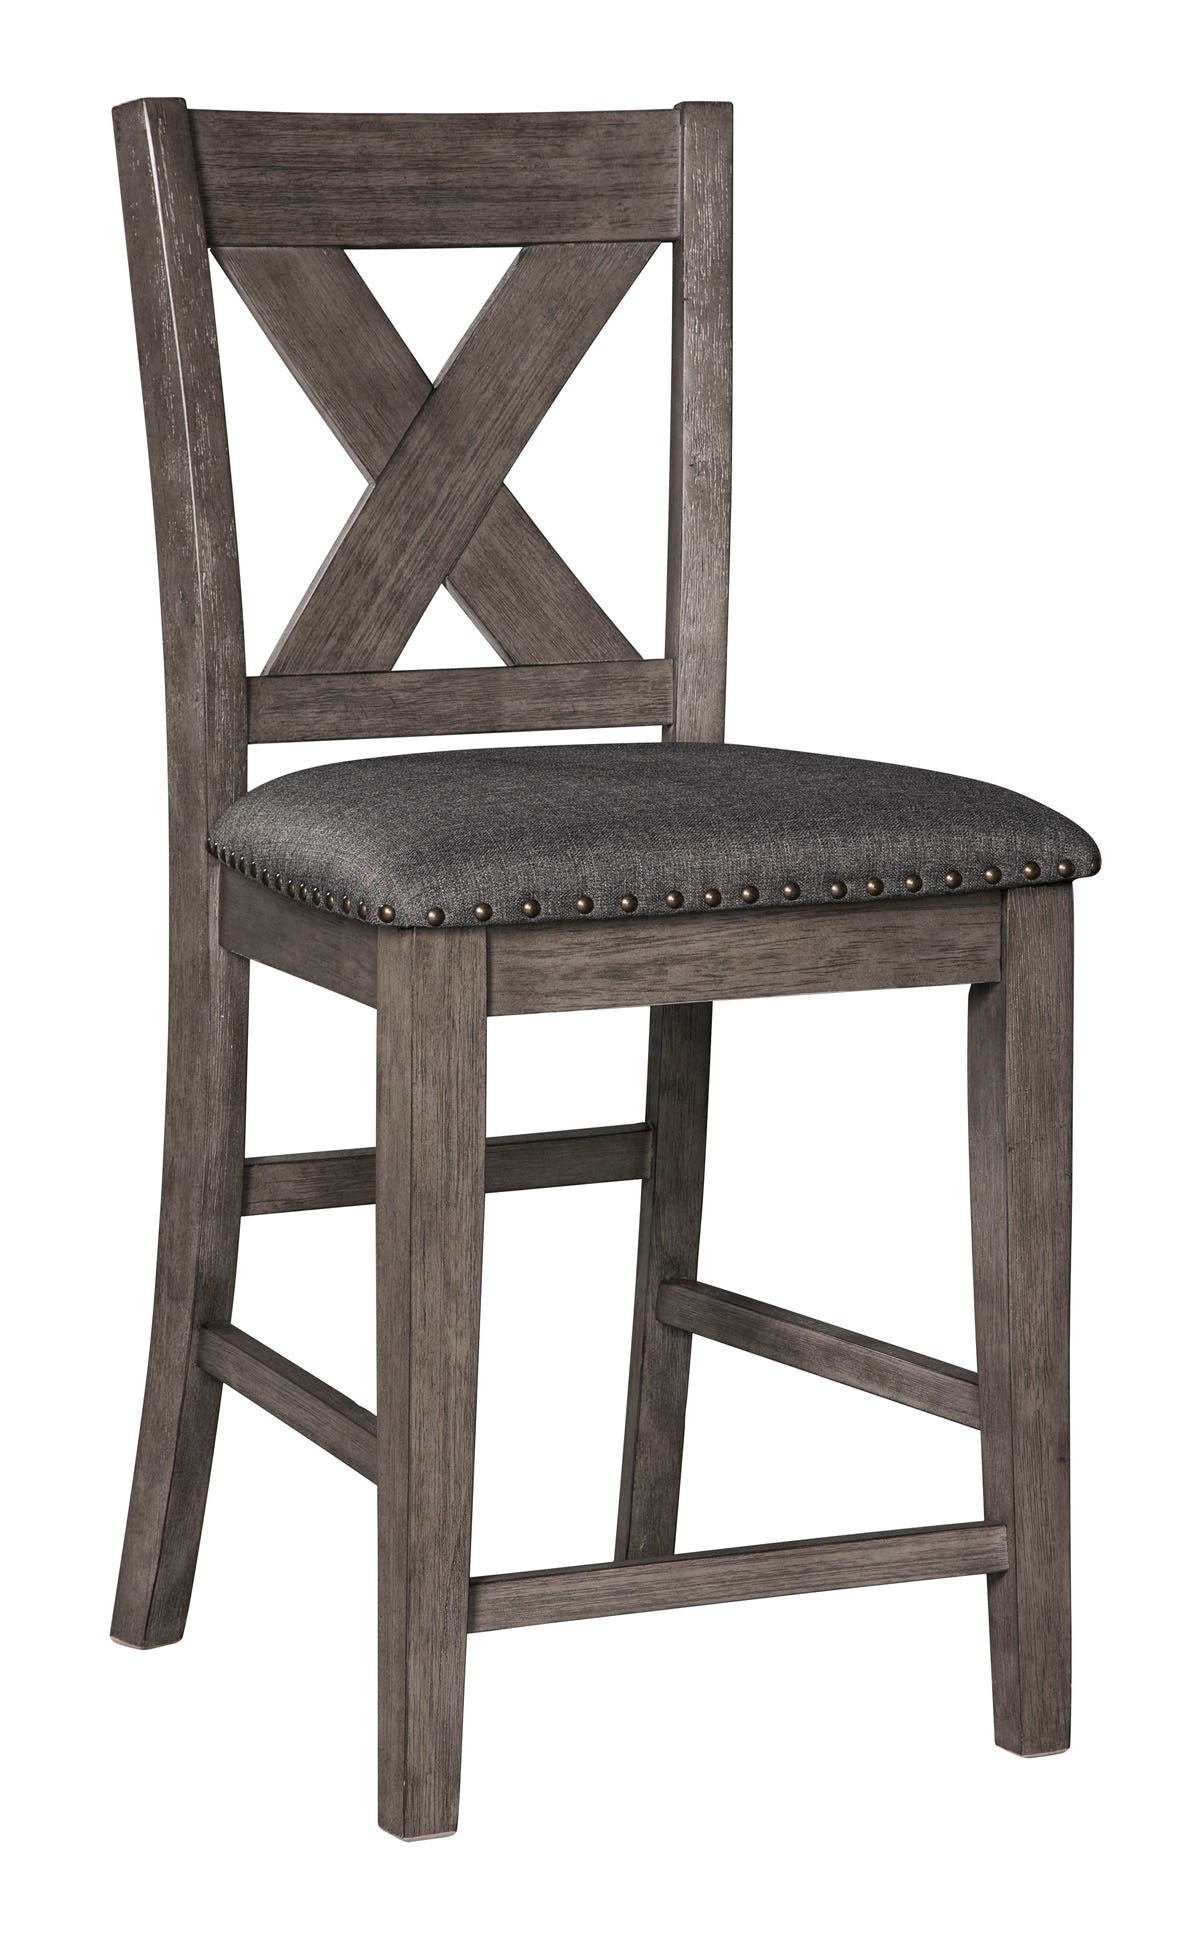 Caitbrook Upholstered Counter Barstool - MJM Furniture